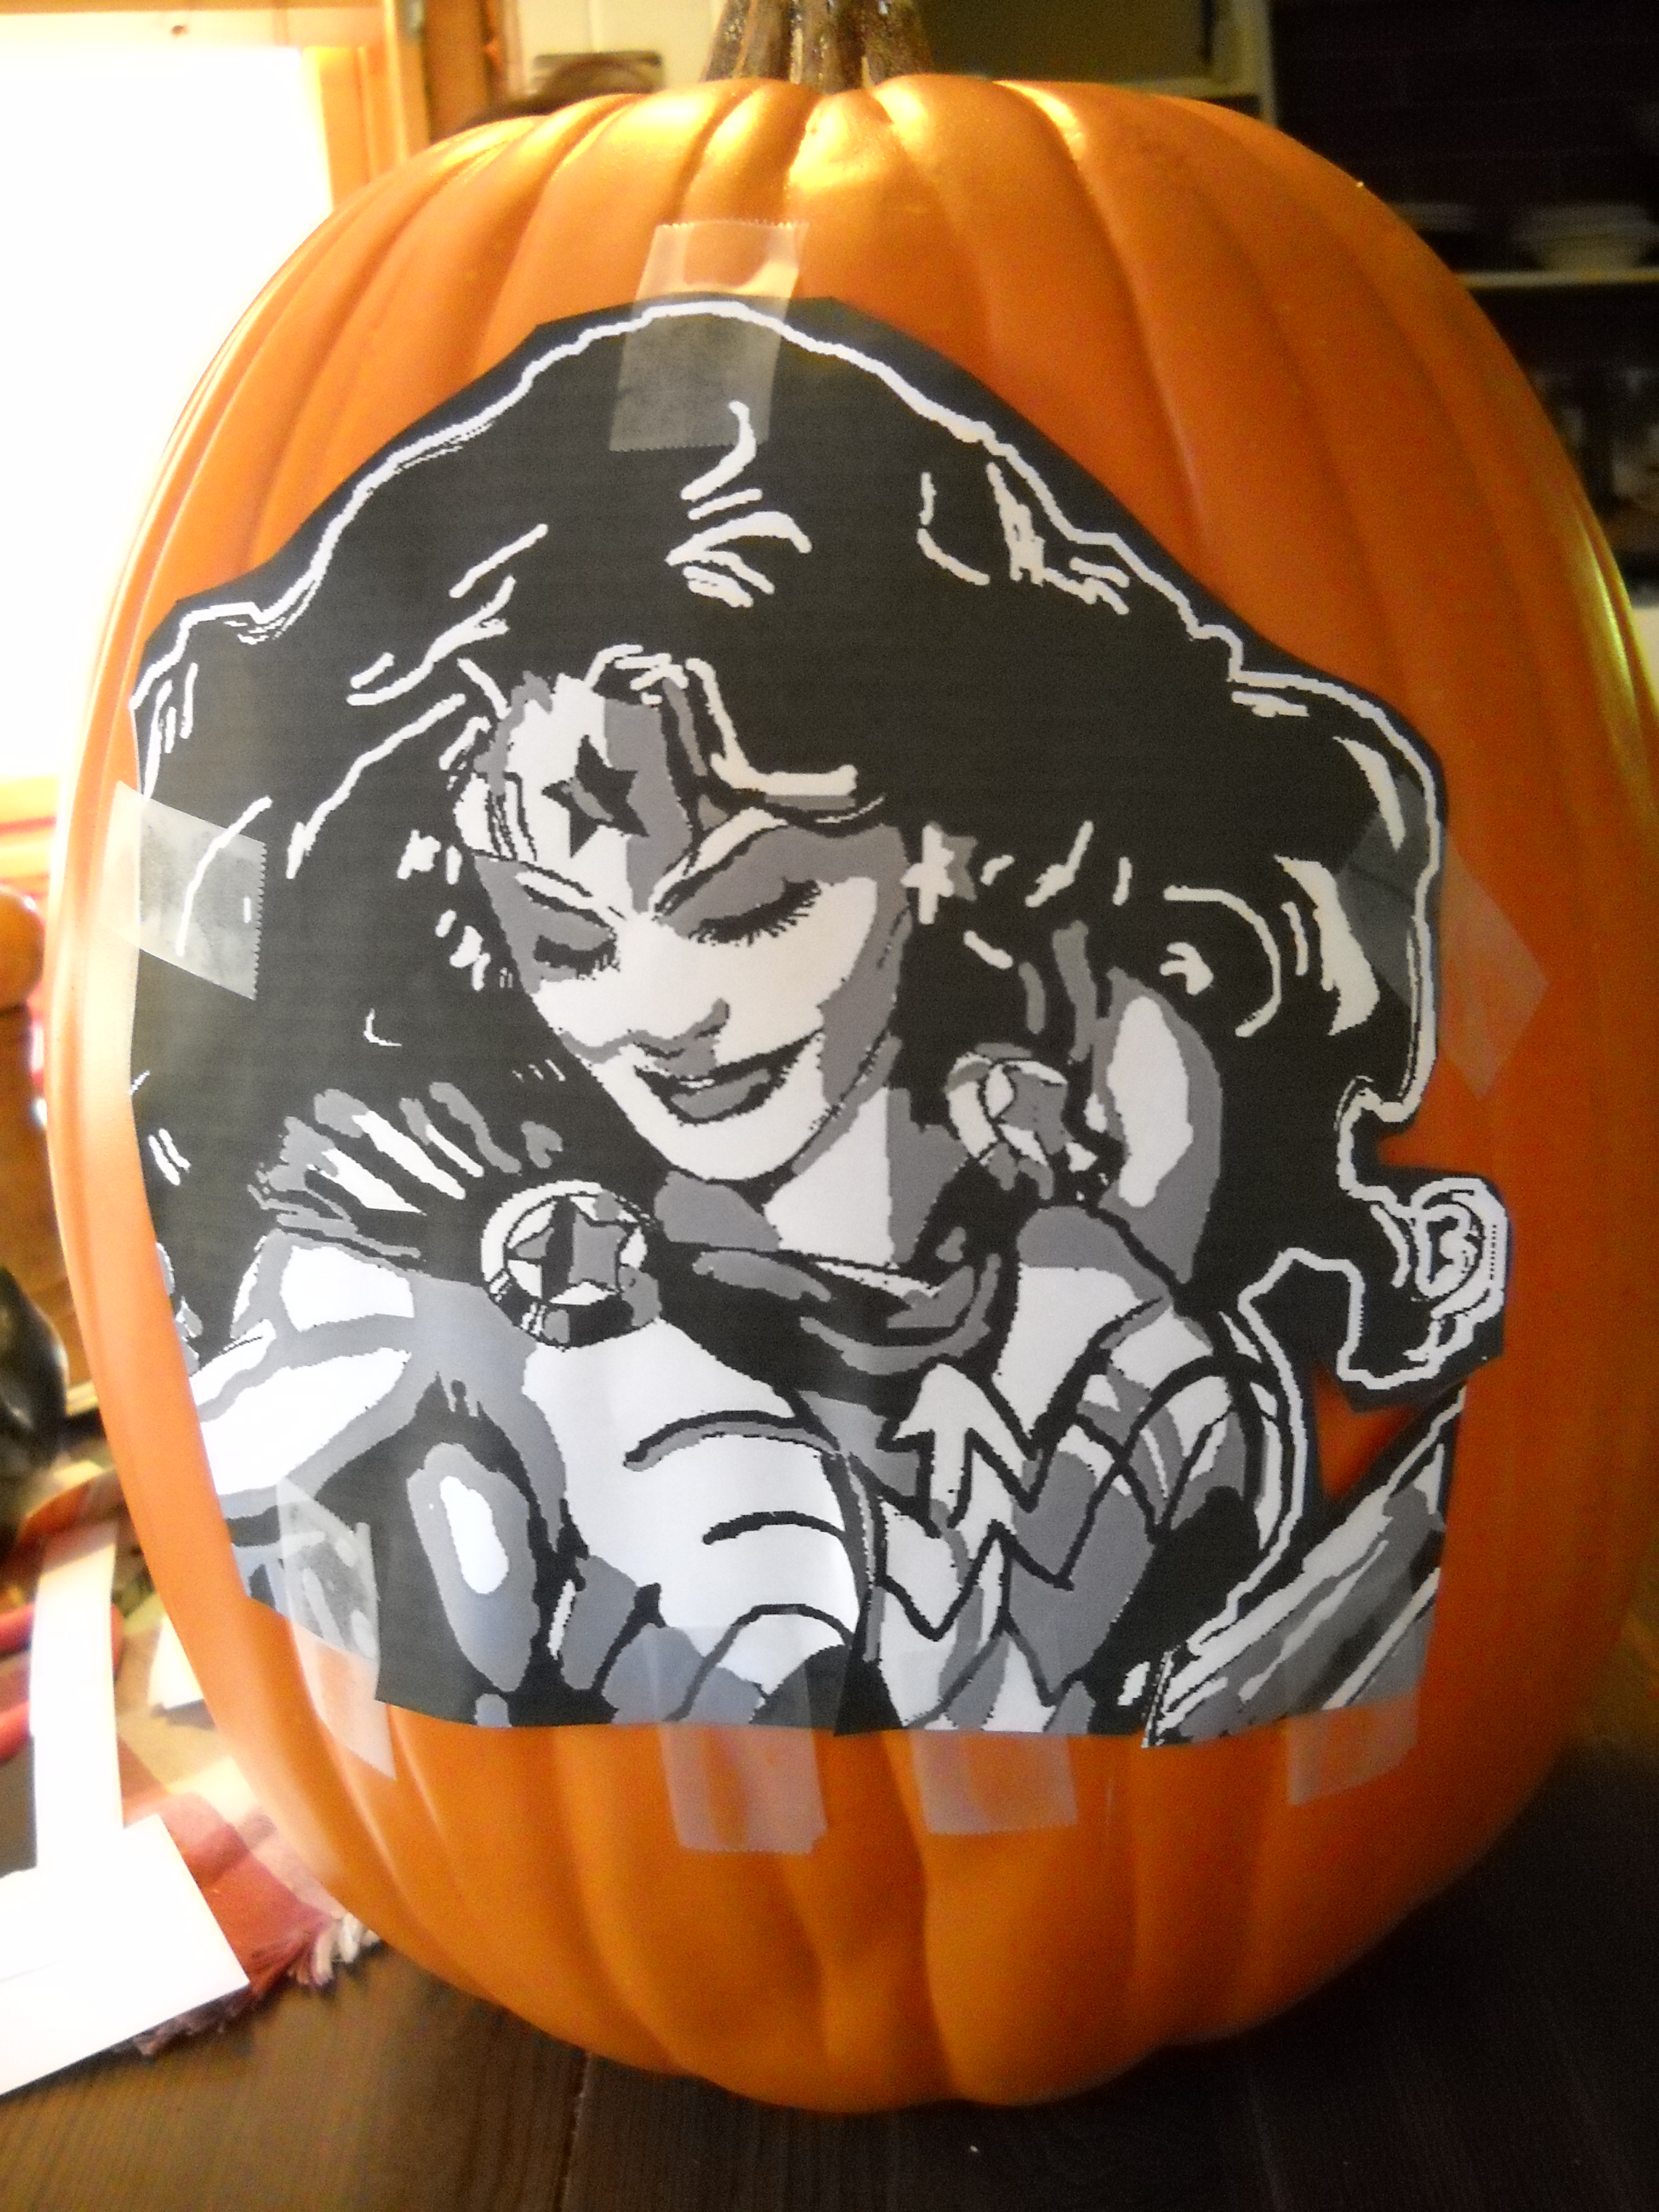 2011 Wonder Woman Pumpkin Carving Tutorial – Amber Unmasked